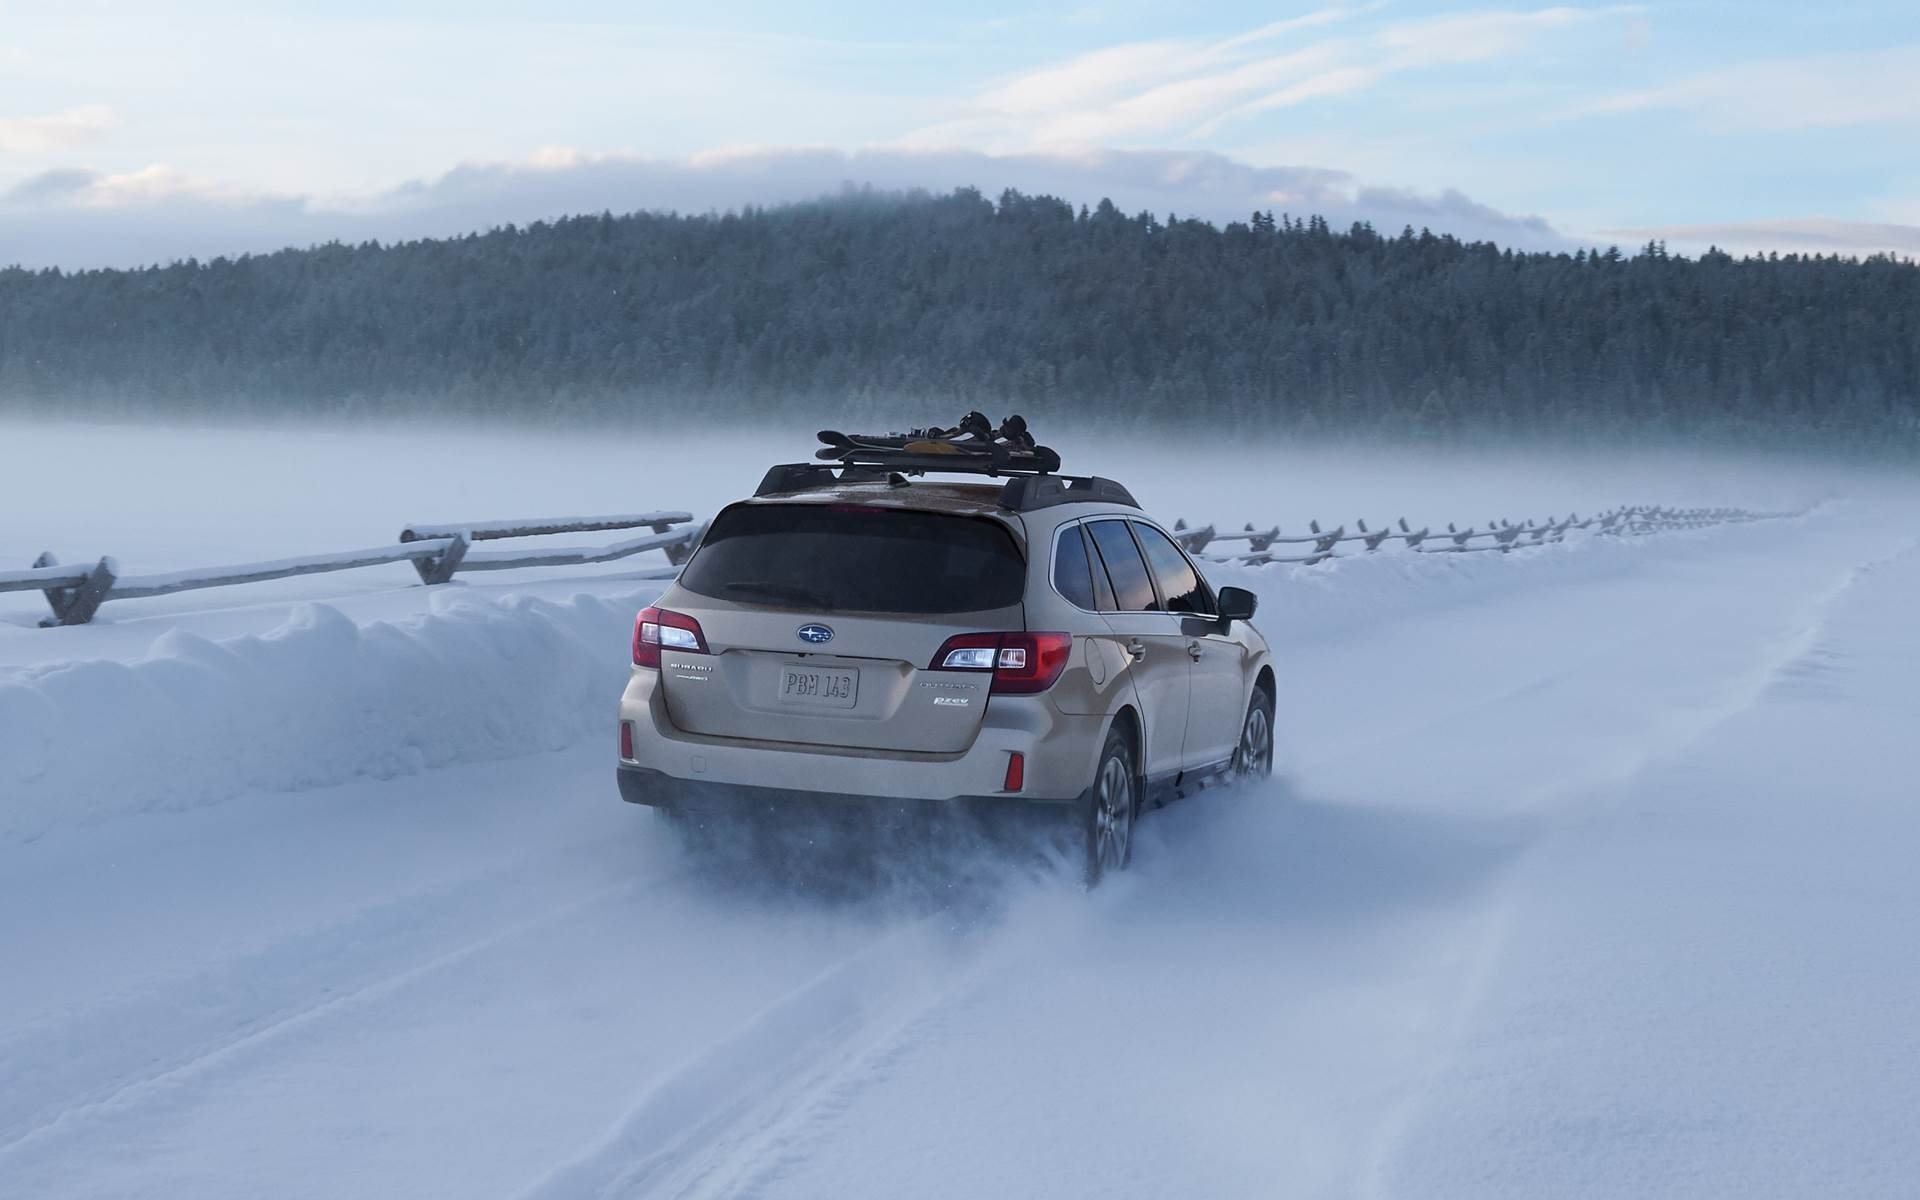 Subaru Legacy: Wiper operation when snowing